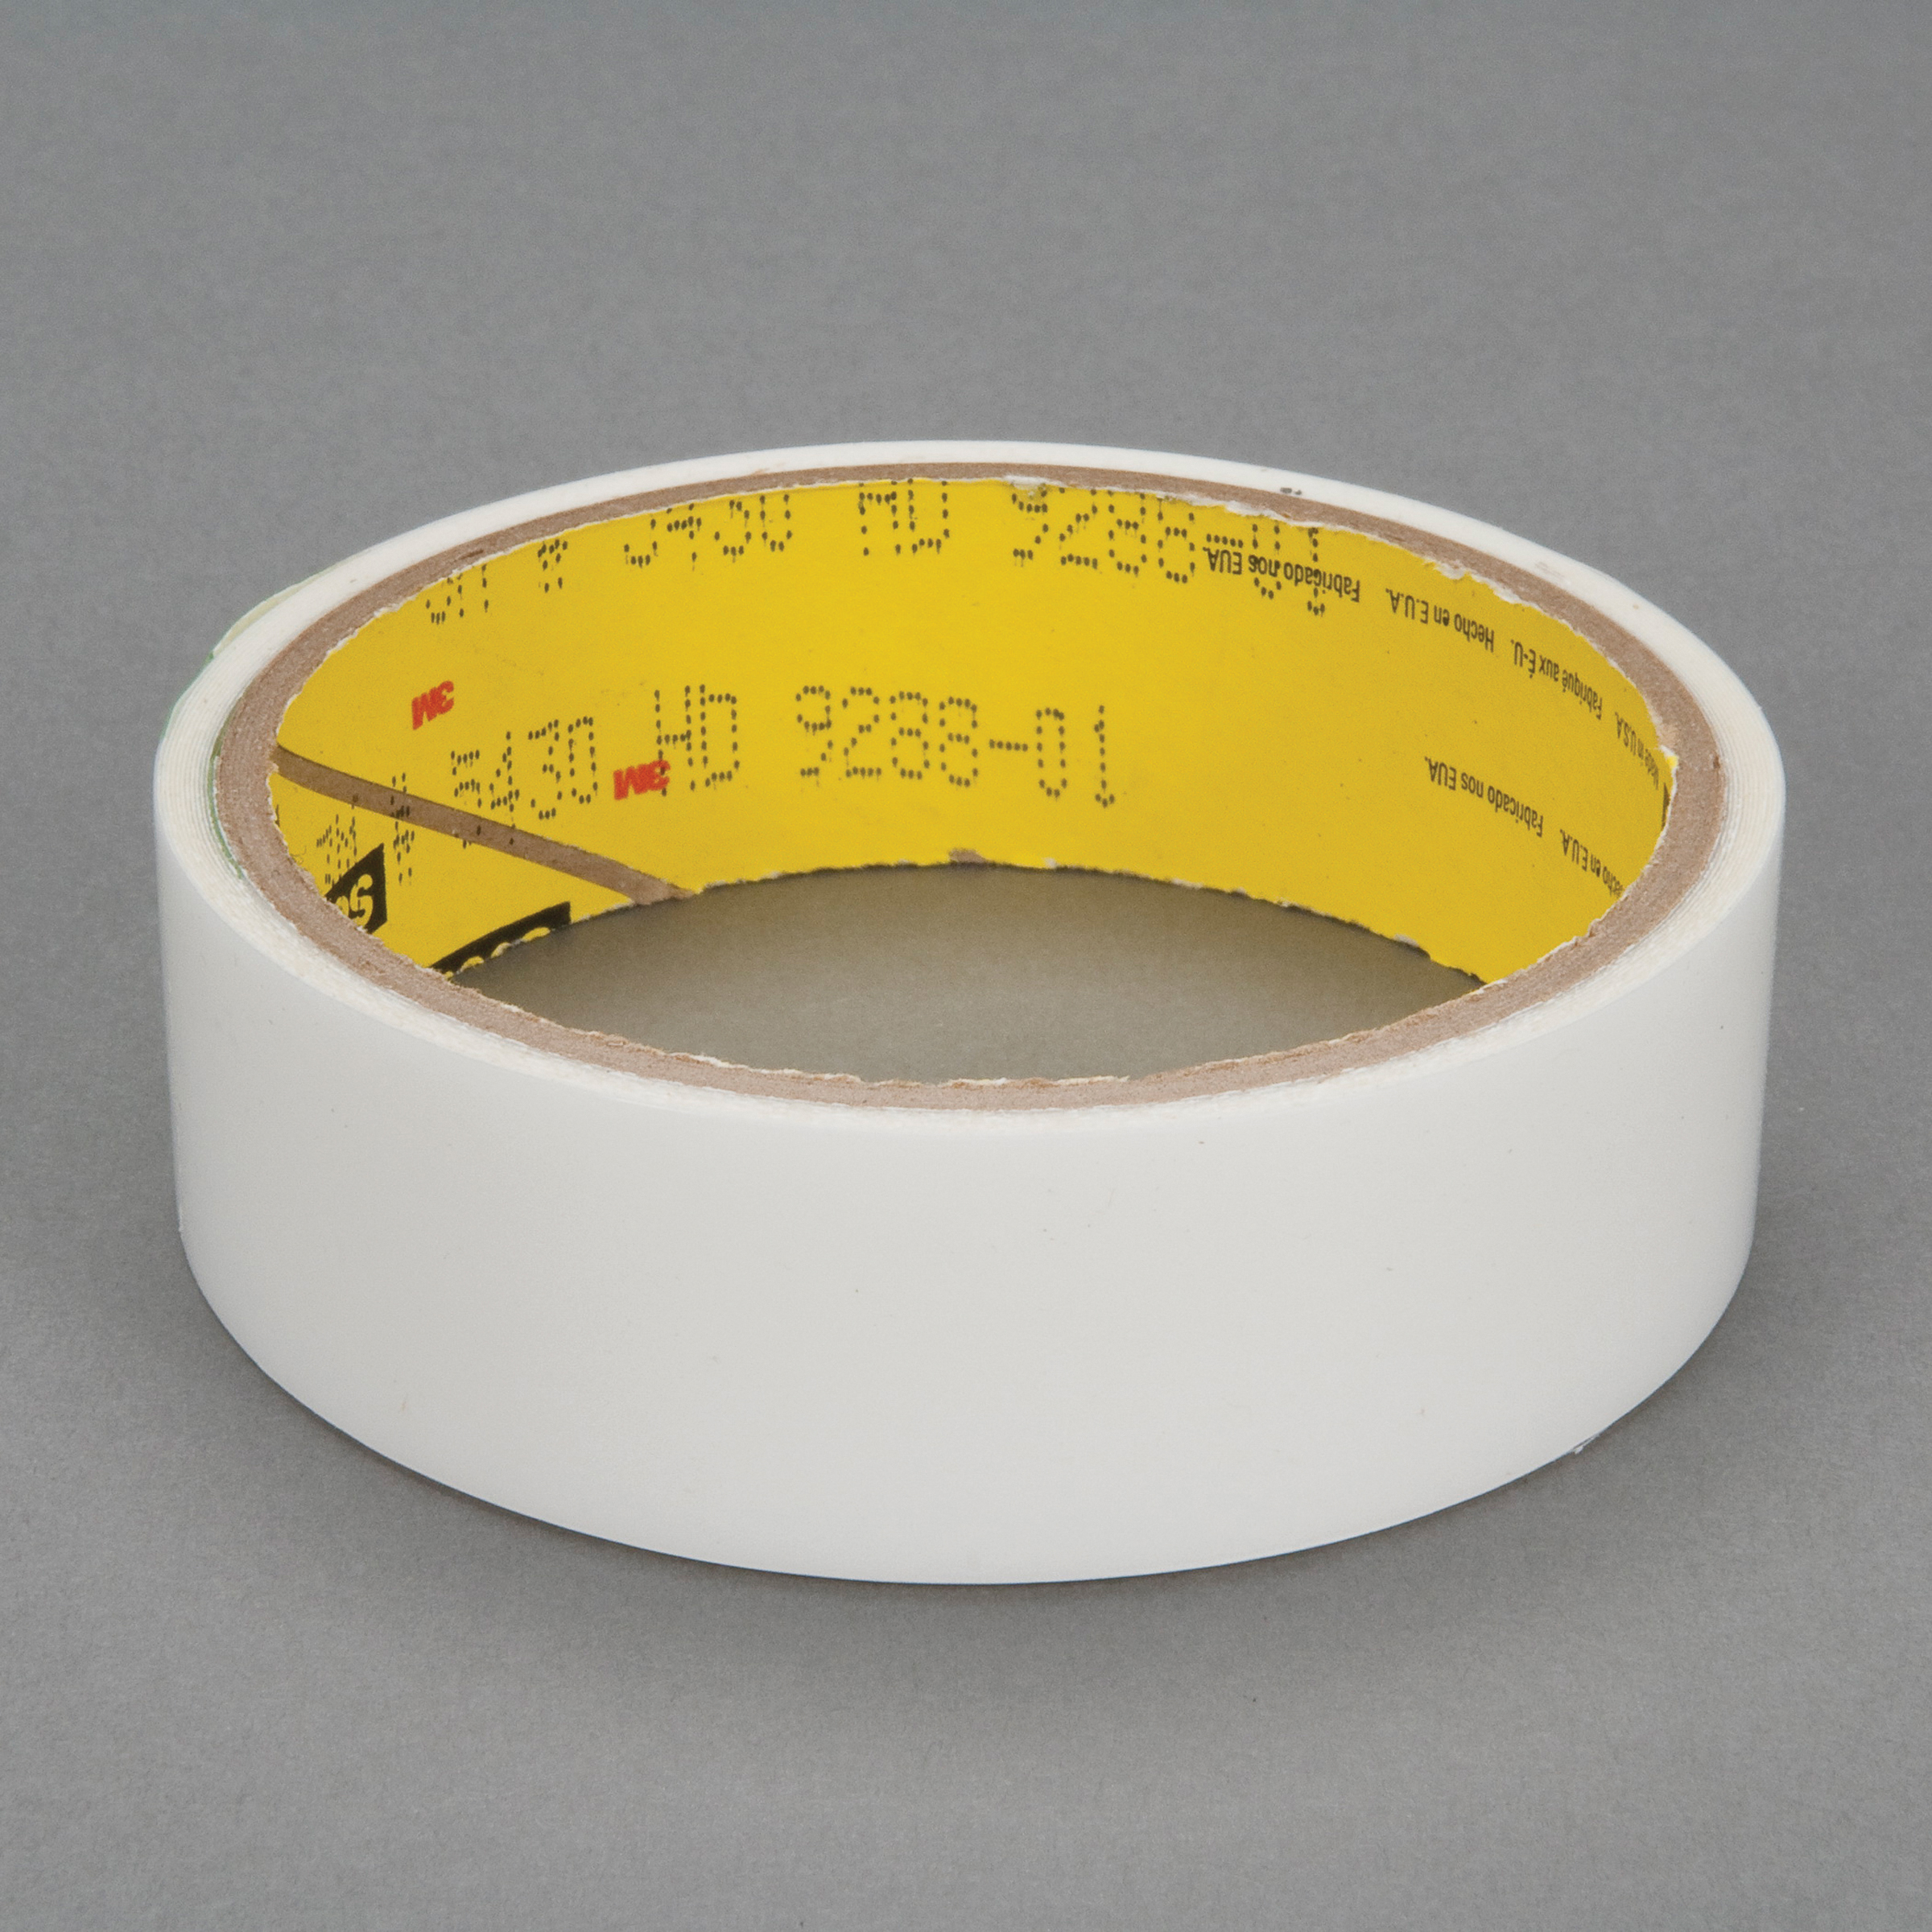 3M™ 021200-24329 High Tack Squeak Reduction Tape, 36 yd L x 1 in W, 7 mil THK, Acrylic Adhesive, UHMWP Film Backing, Transparent